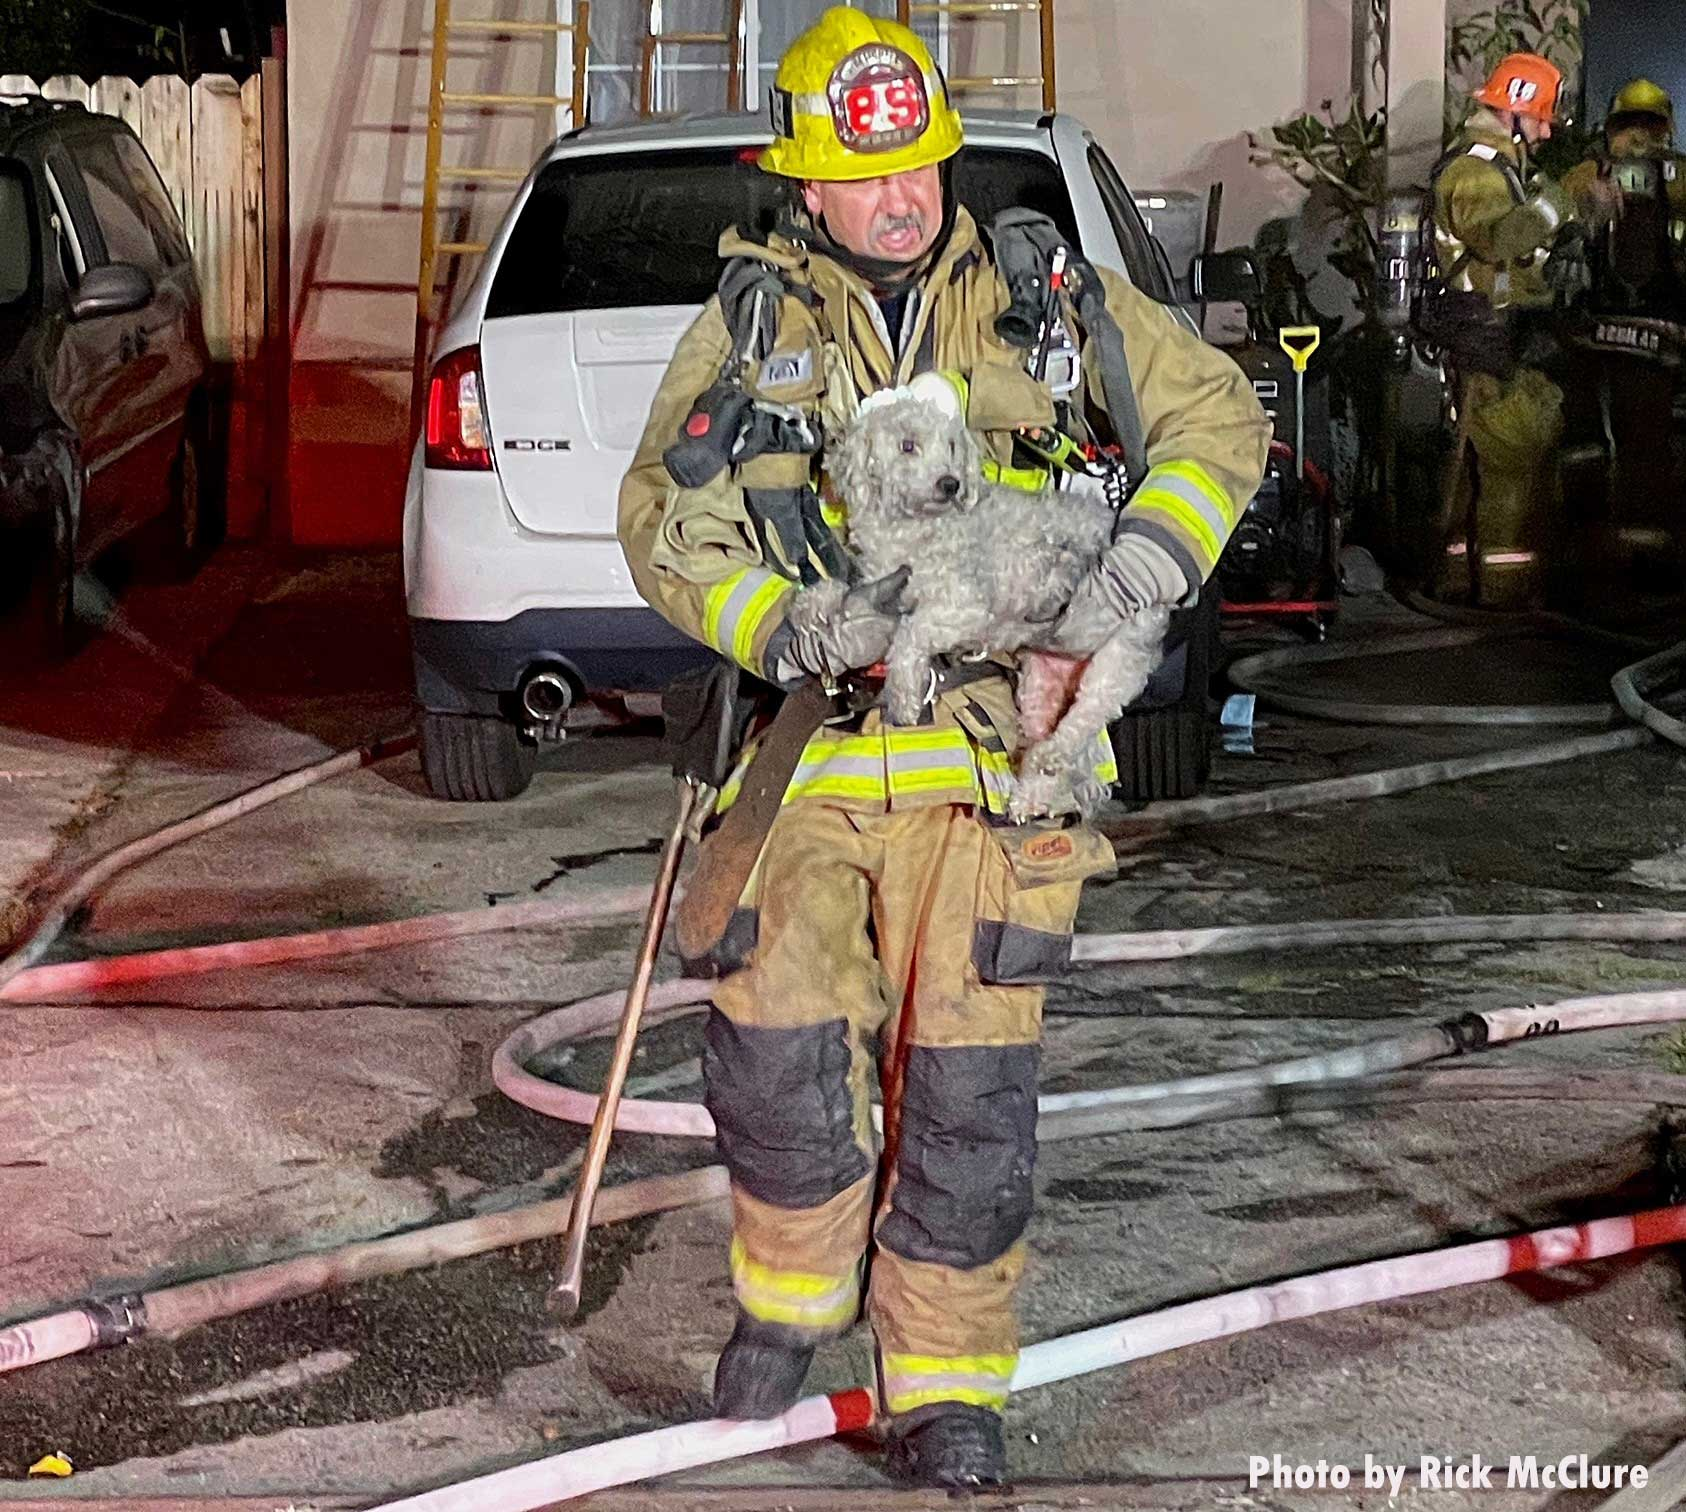 LAFD firefighter carrying a rescued dog